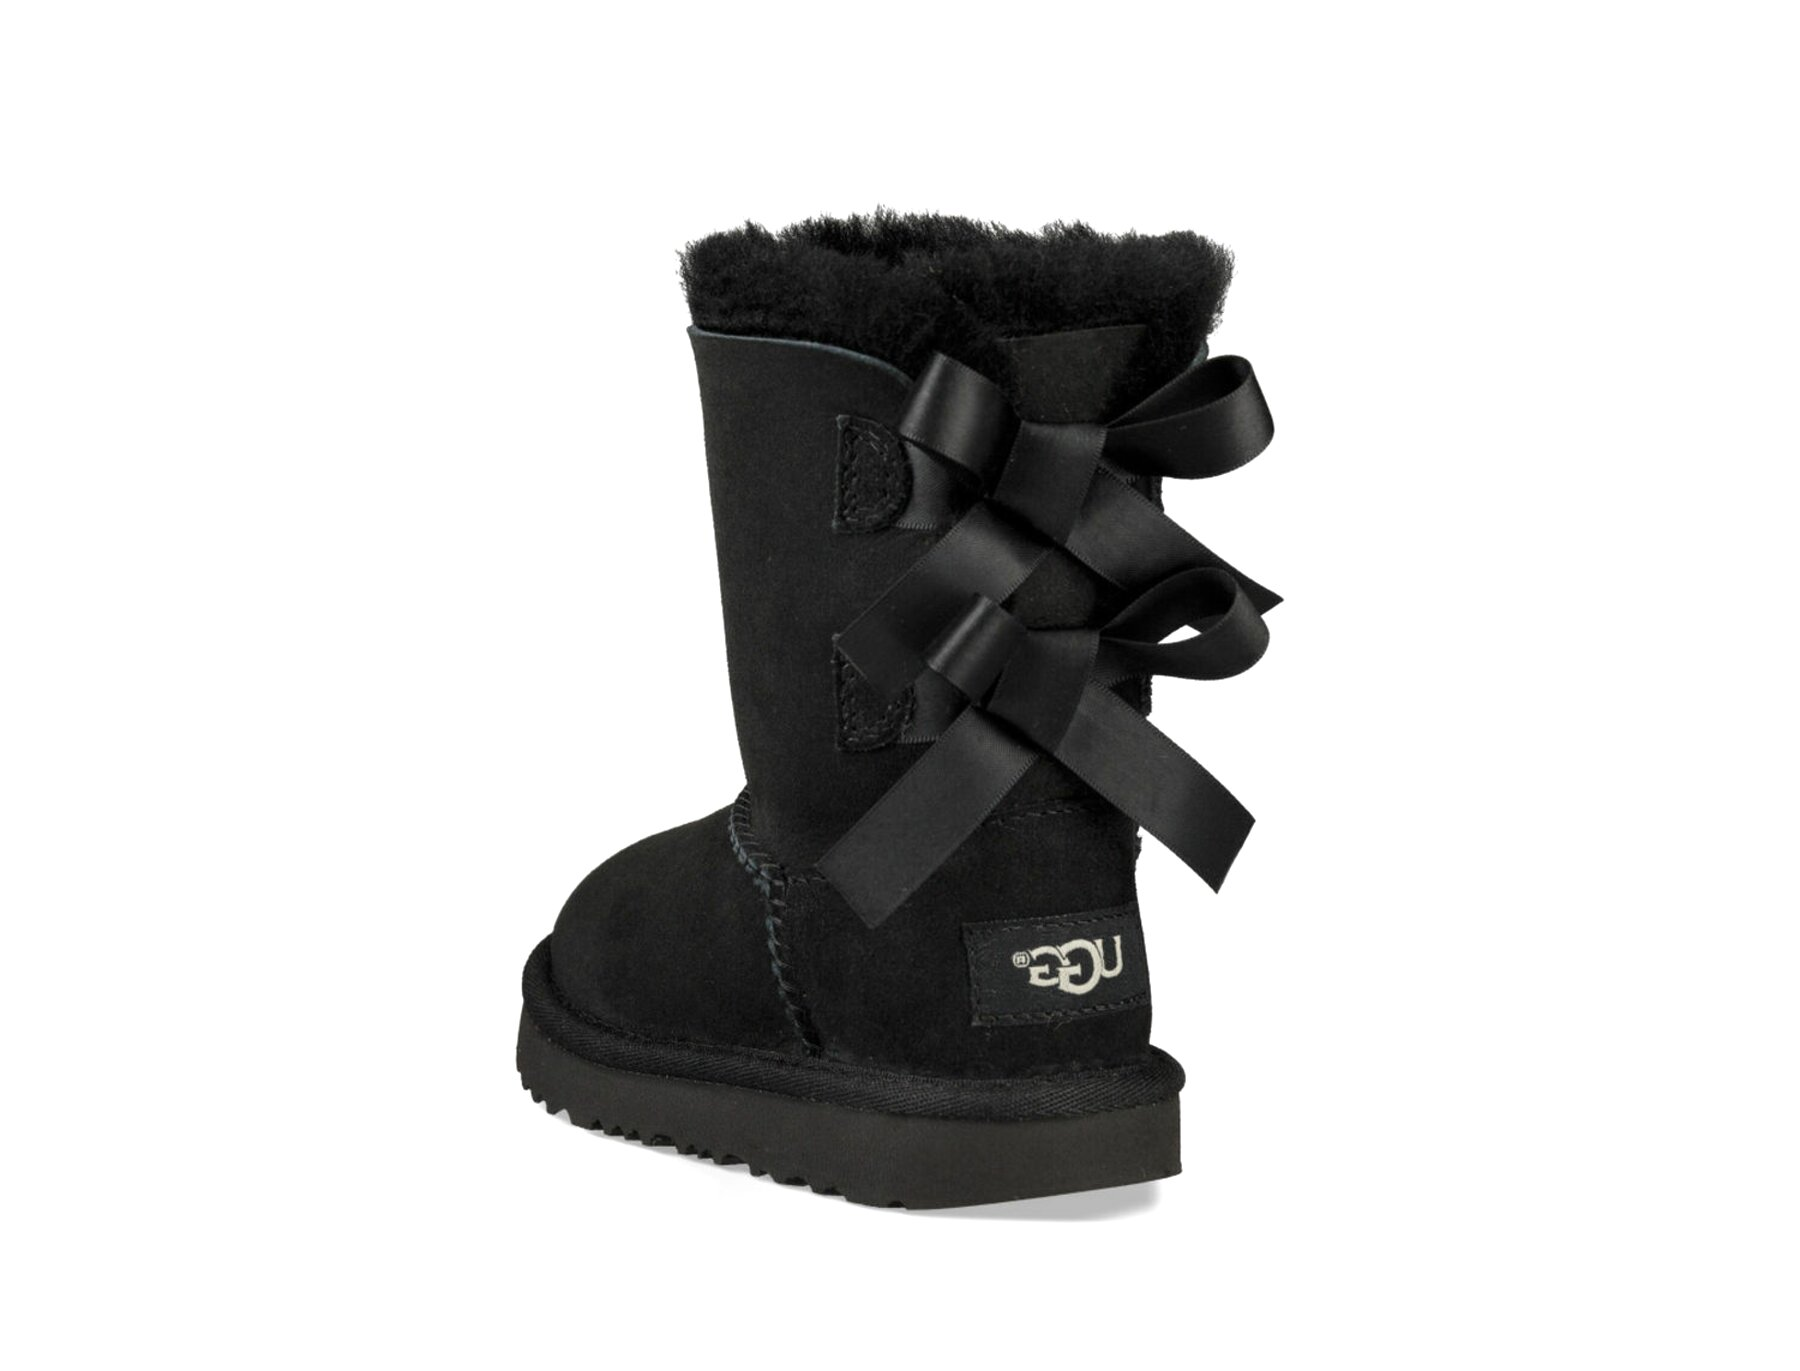 ugg boots bailey bow for sale